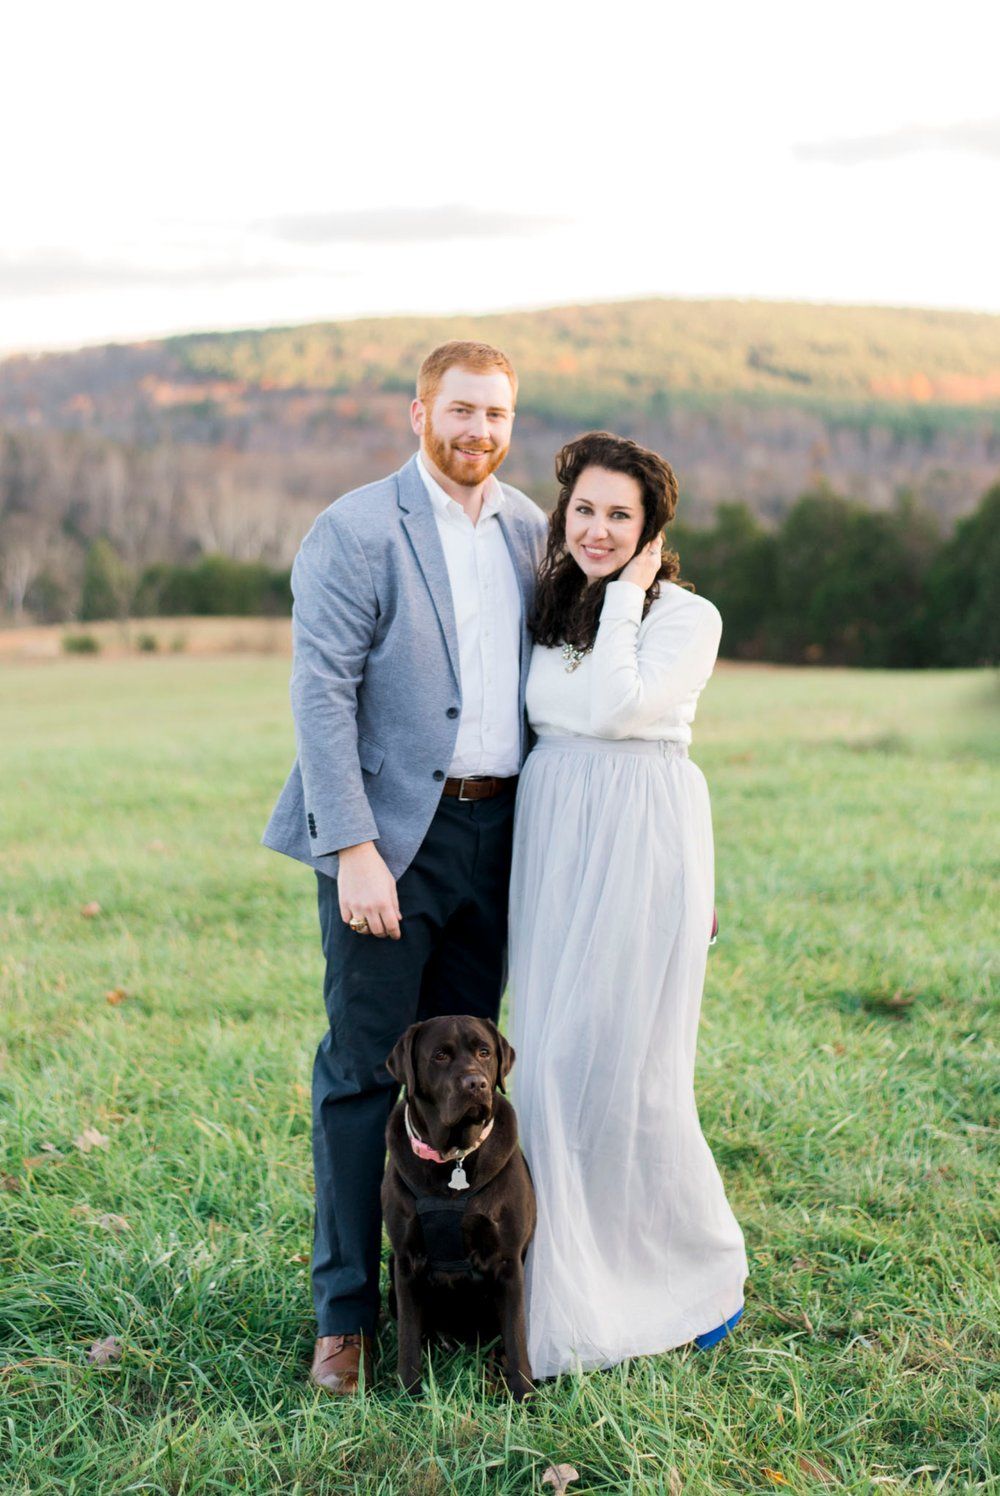 SorellaFarms_EngagementSession_VirginiaweddingPhotographer 62.jpg